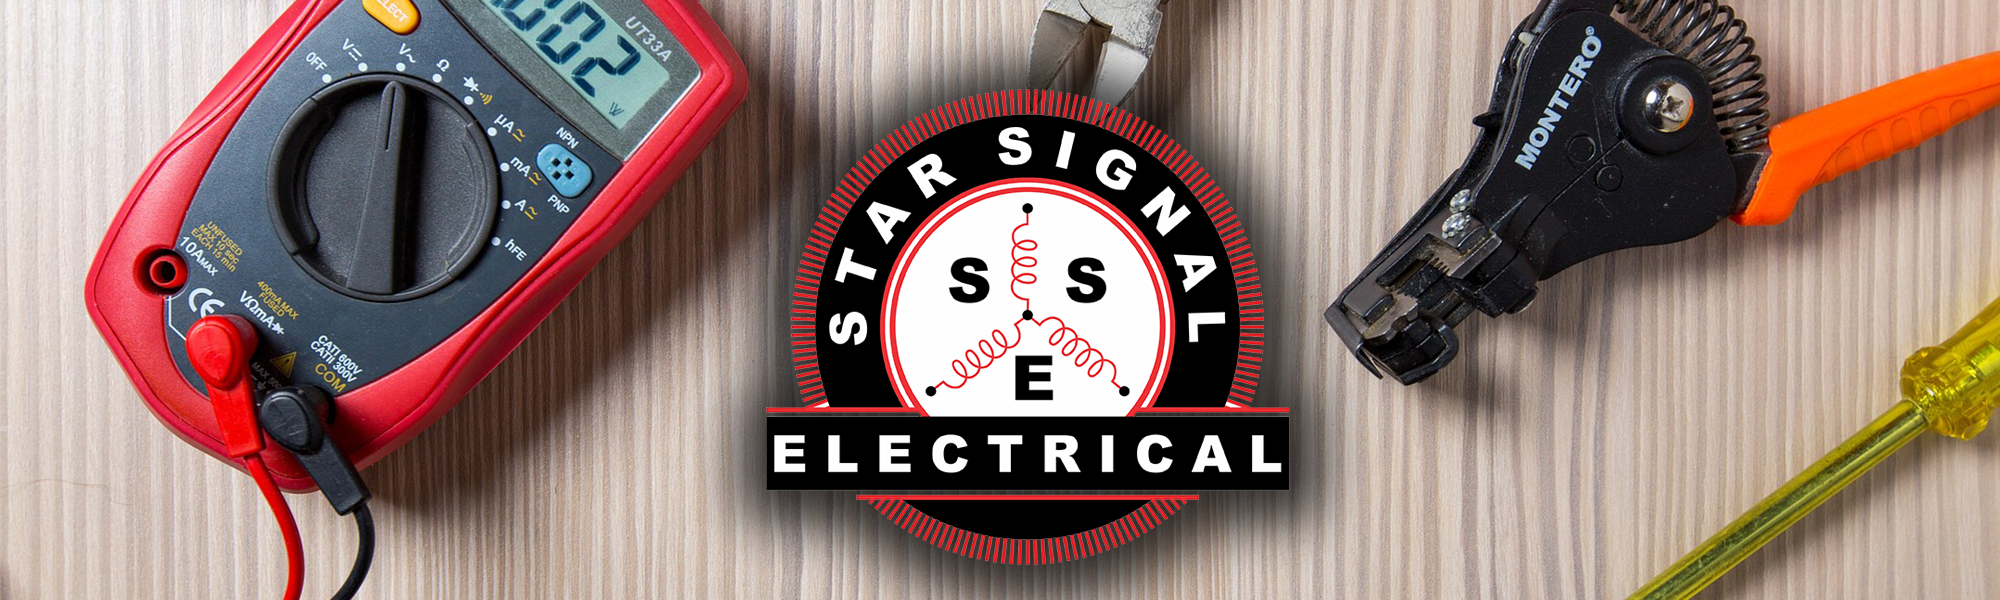 Star Signal Electrical